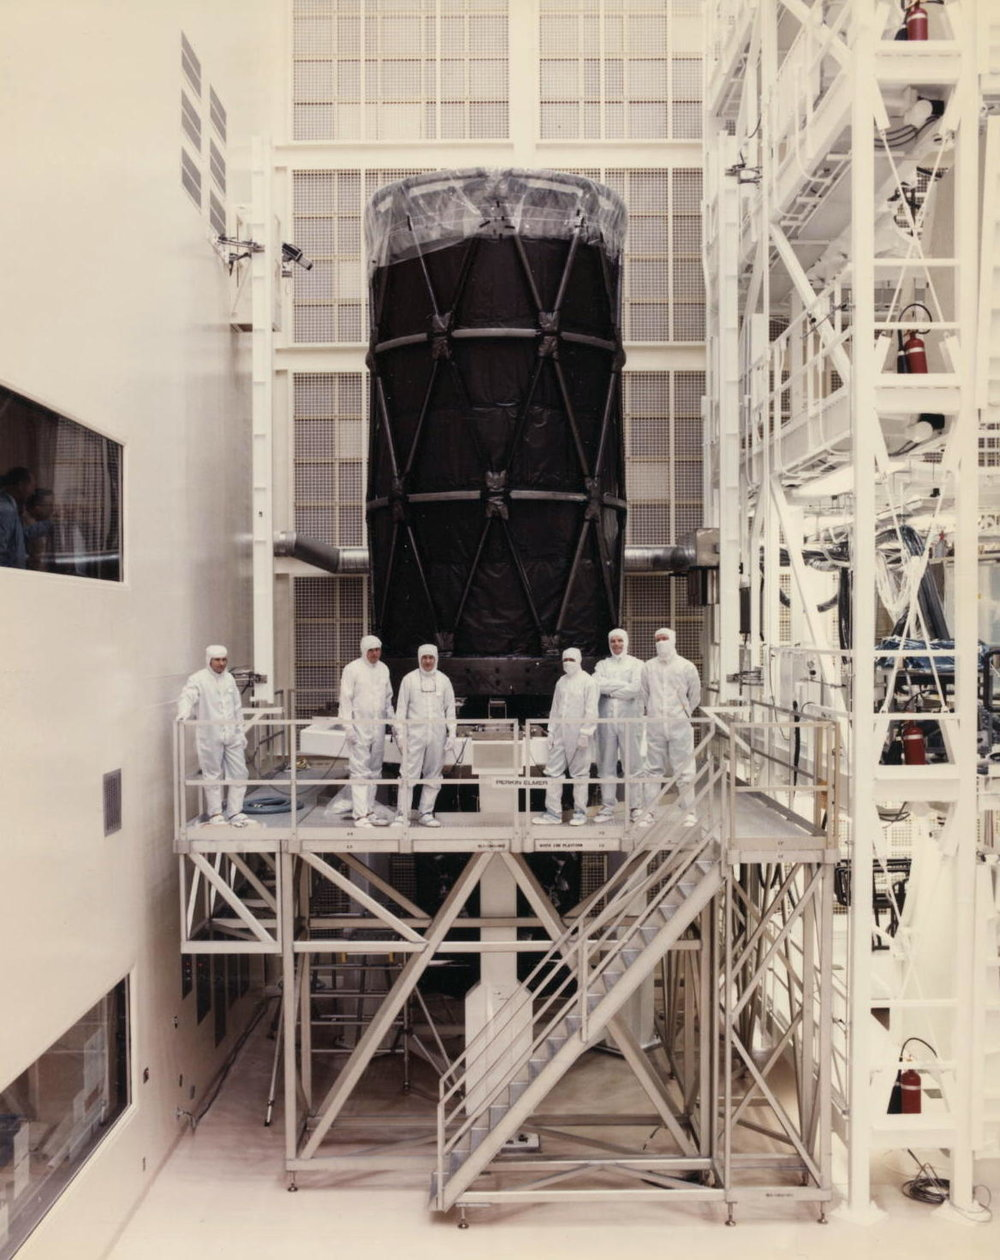 Guys working on the Hubble